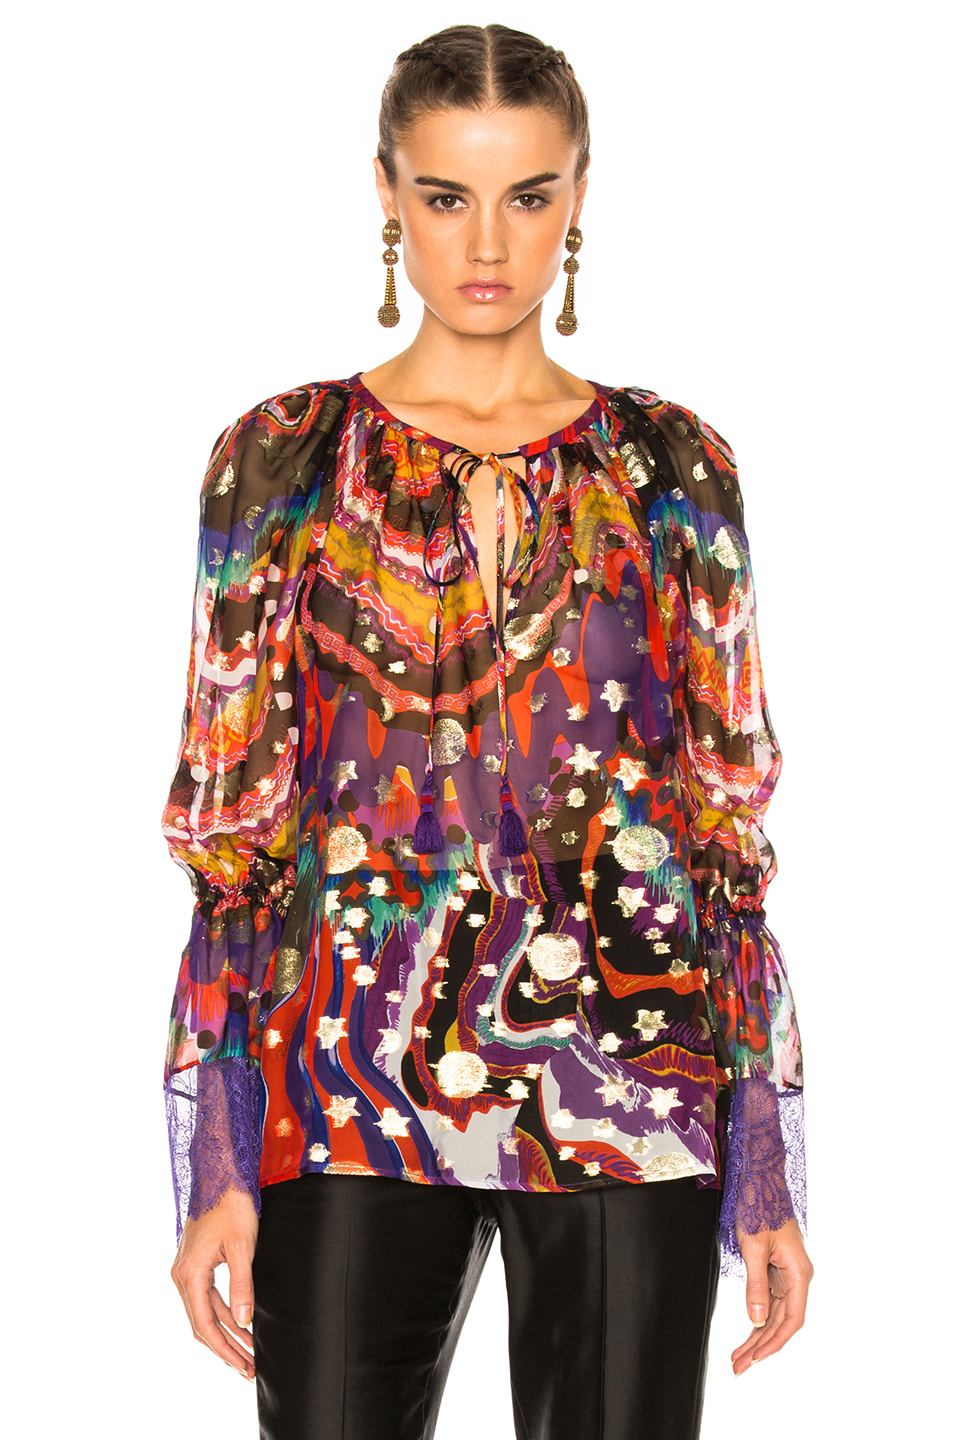 Roberto Cavalli Printed Woven Blouse in Abstract,Metallics,Purple,Red